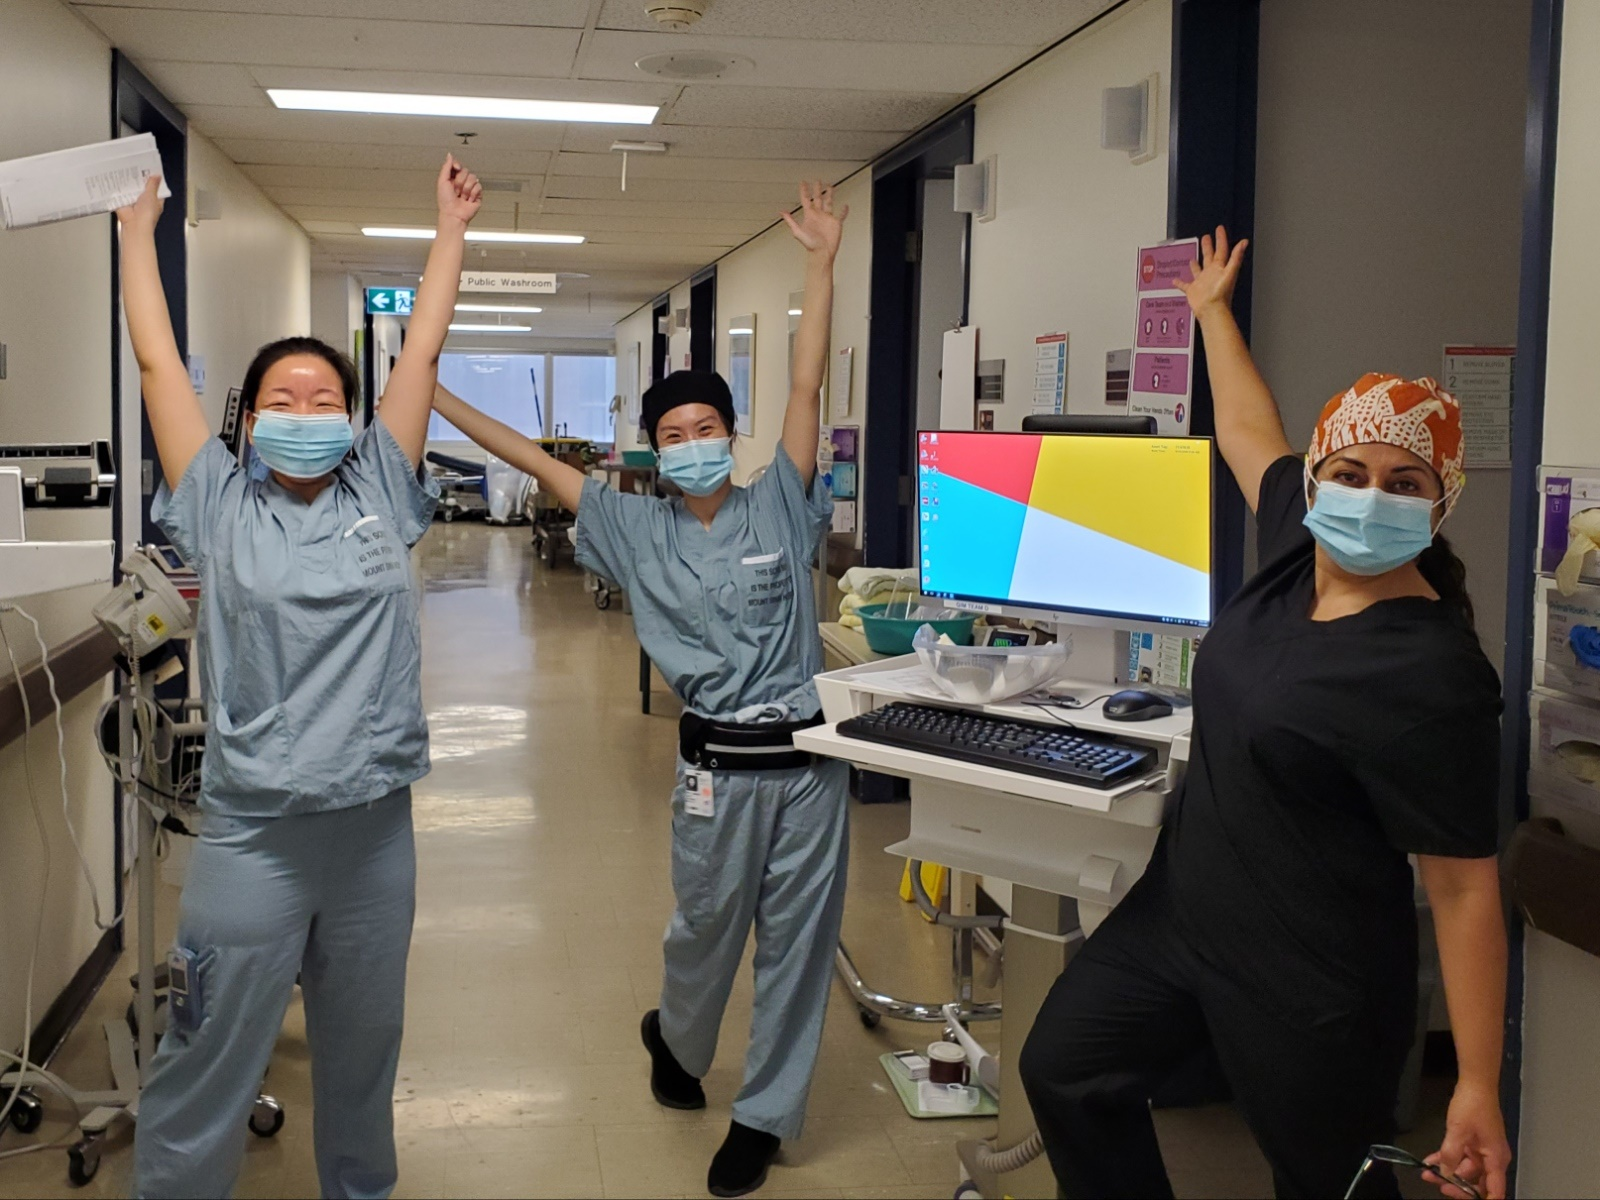 Three nurses in a hospital hallway with medical equipment. They are wearing masks and scrubs and looking at the camera with their hands in the air, celebrating